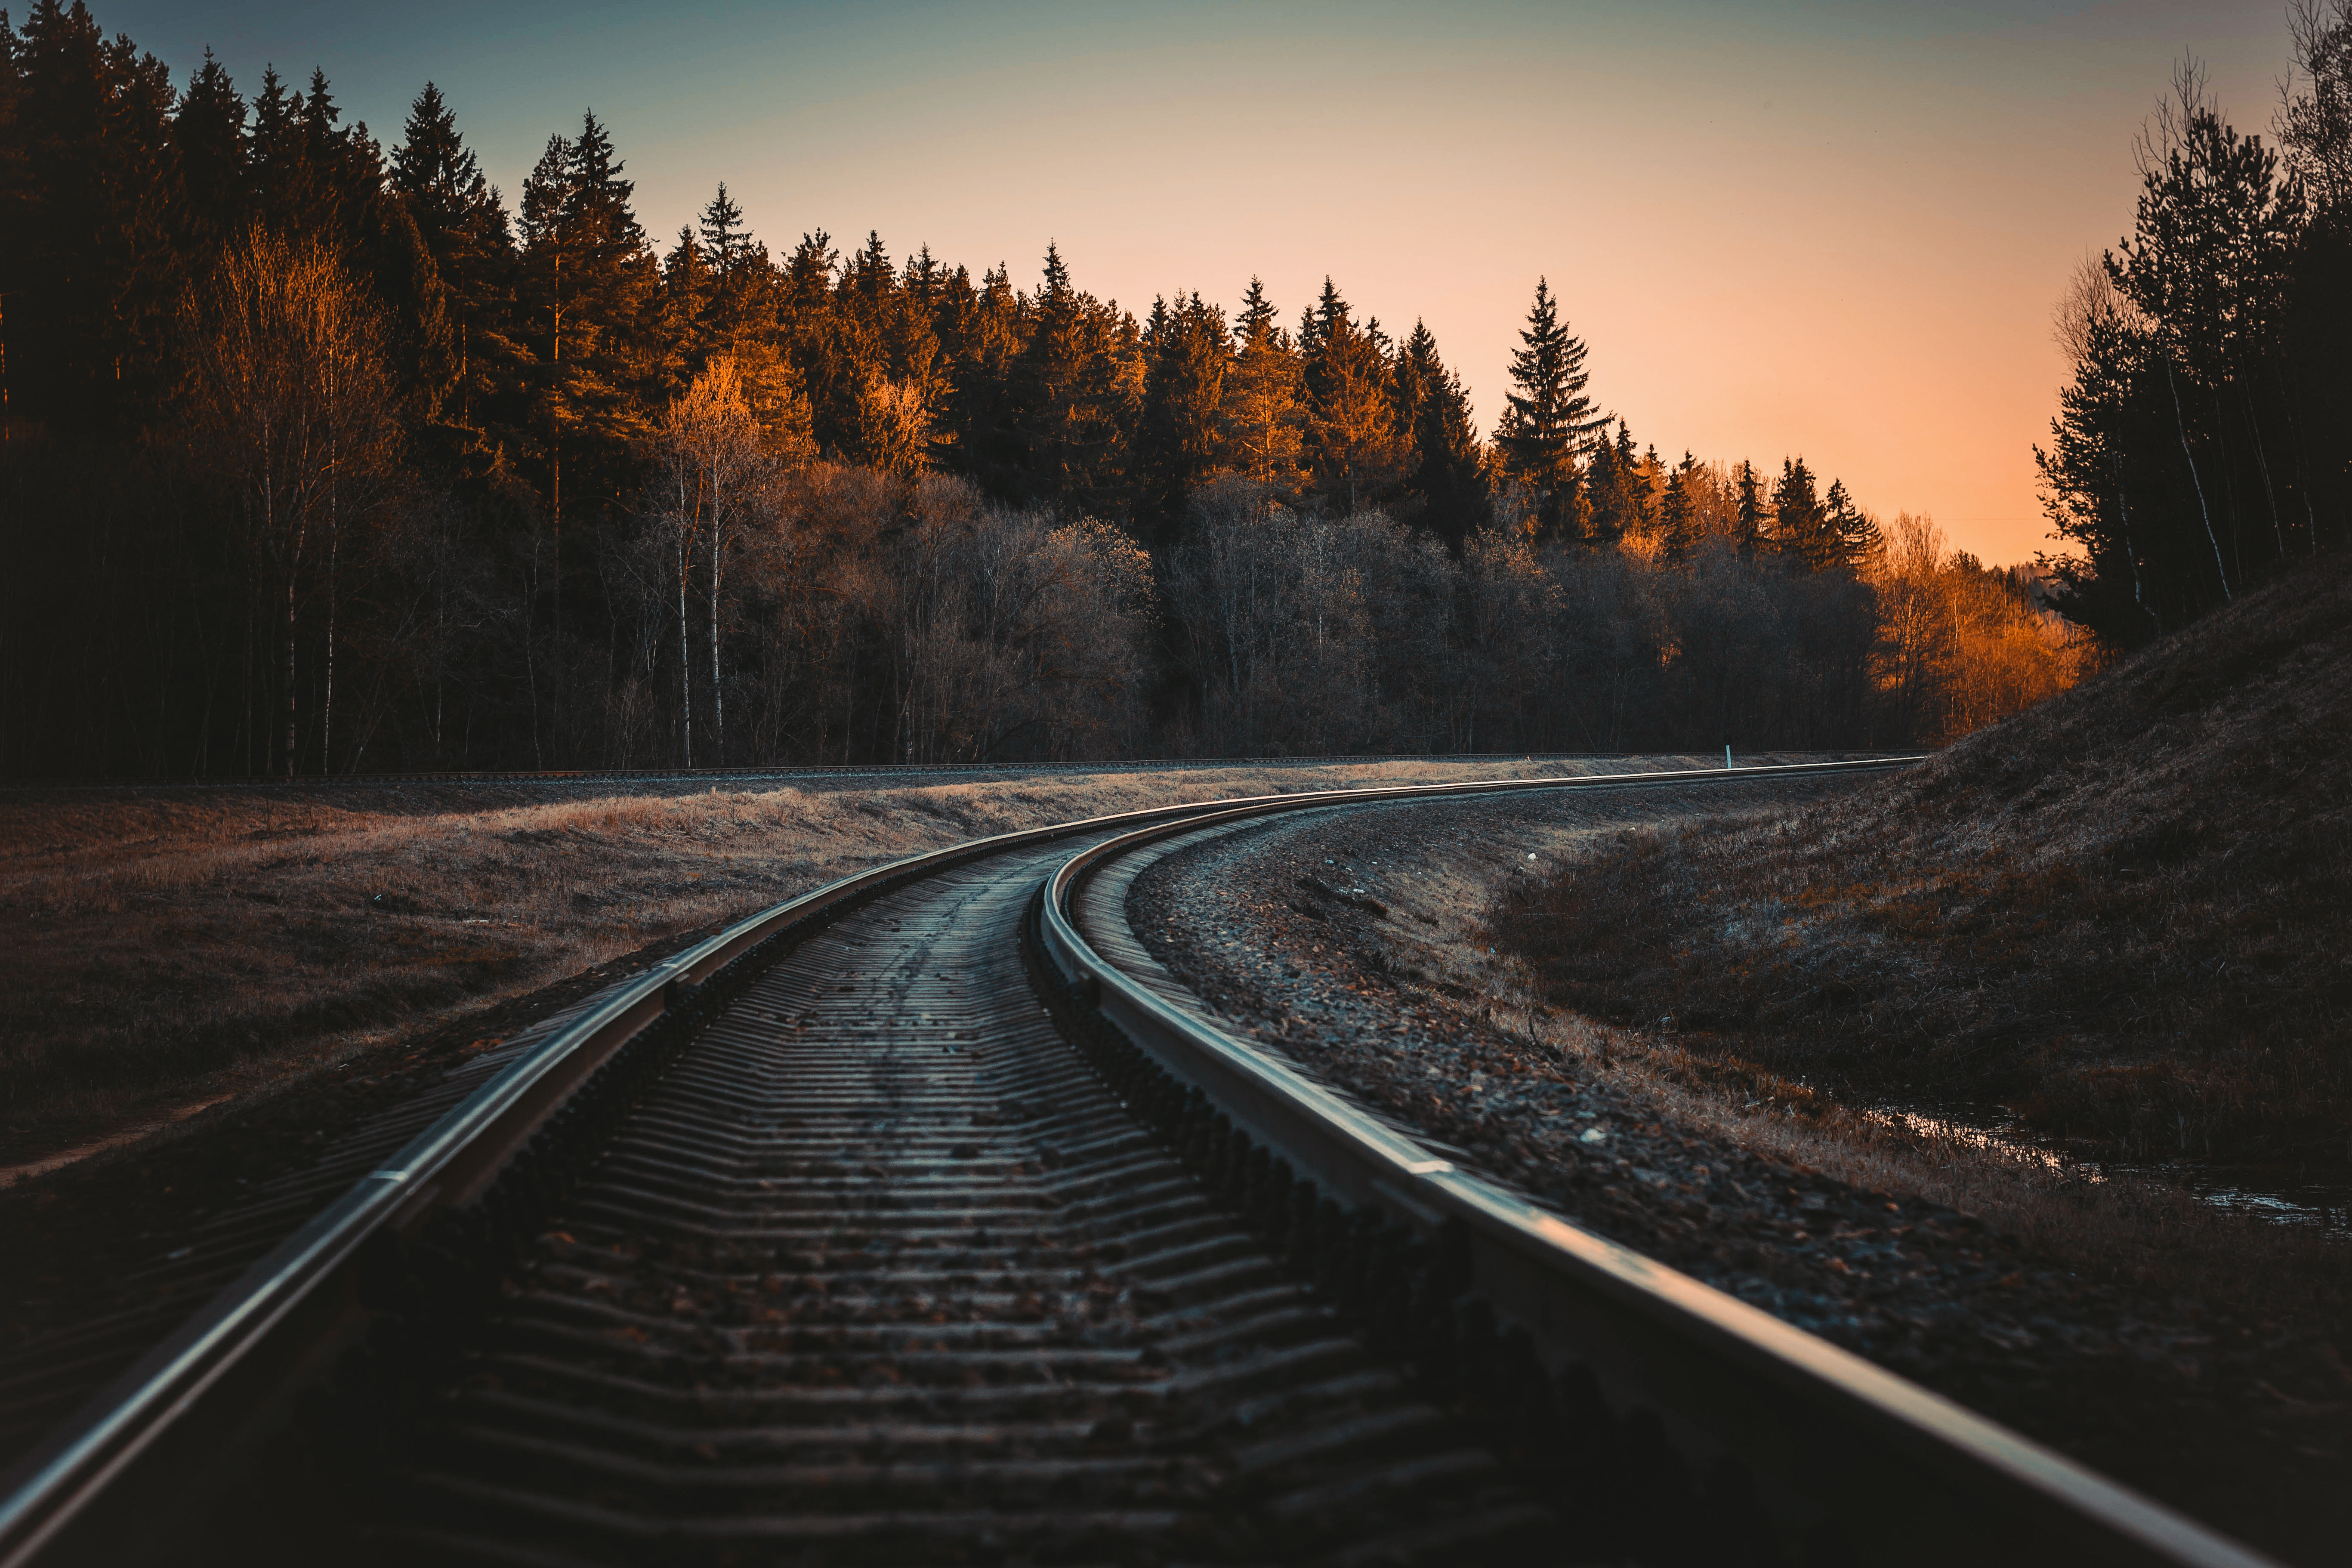 20 Creative Fall Photography Ideas - Train Rail During Golden Hour by Irina Kostenich via Pexels | https://www.roseclearfield.com